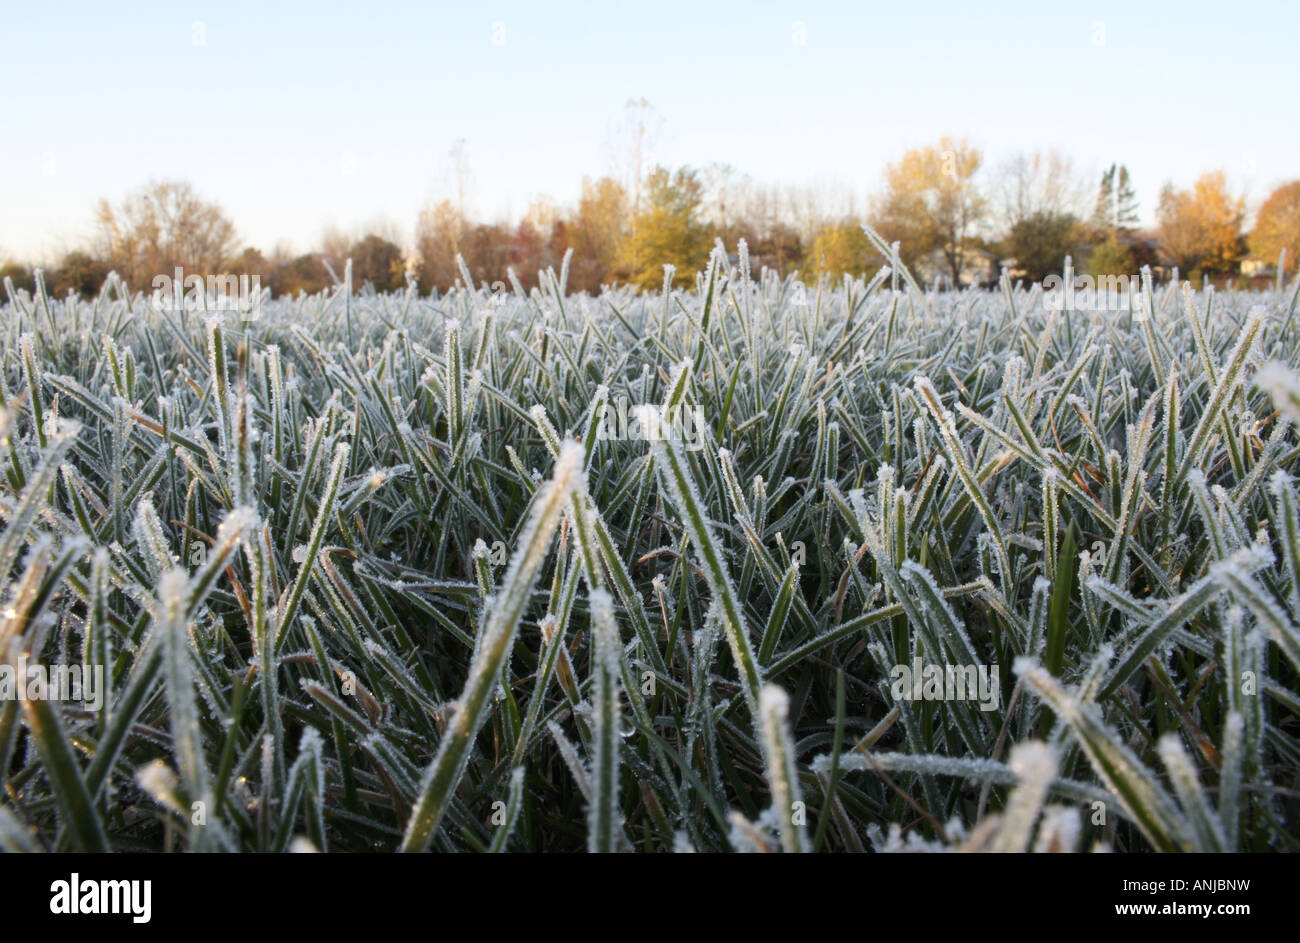 Frost Formations on Grass in a Field - Stock Image